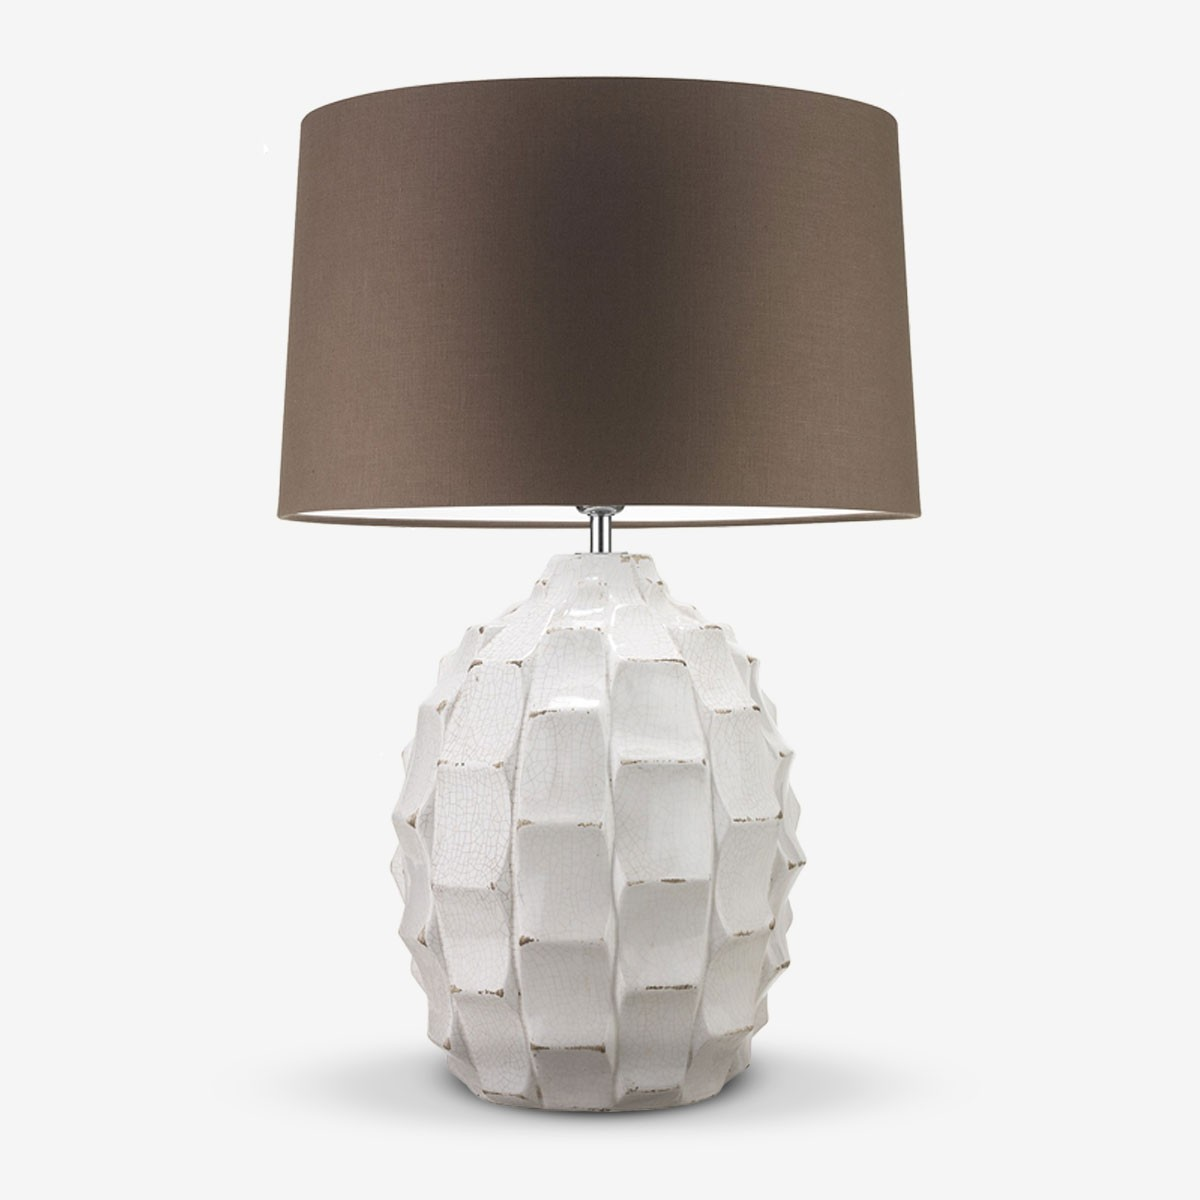 Bayern Sculptural Table Lamp | Ex-Display